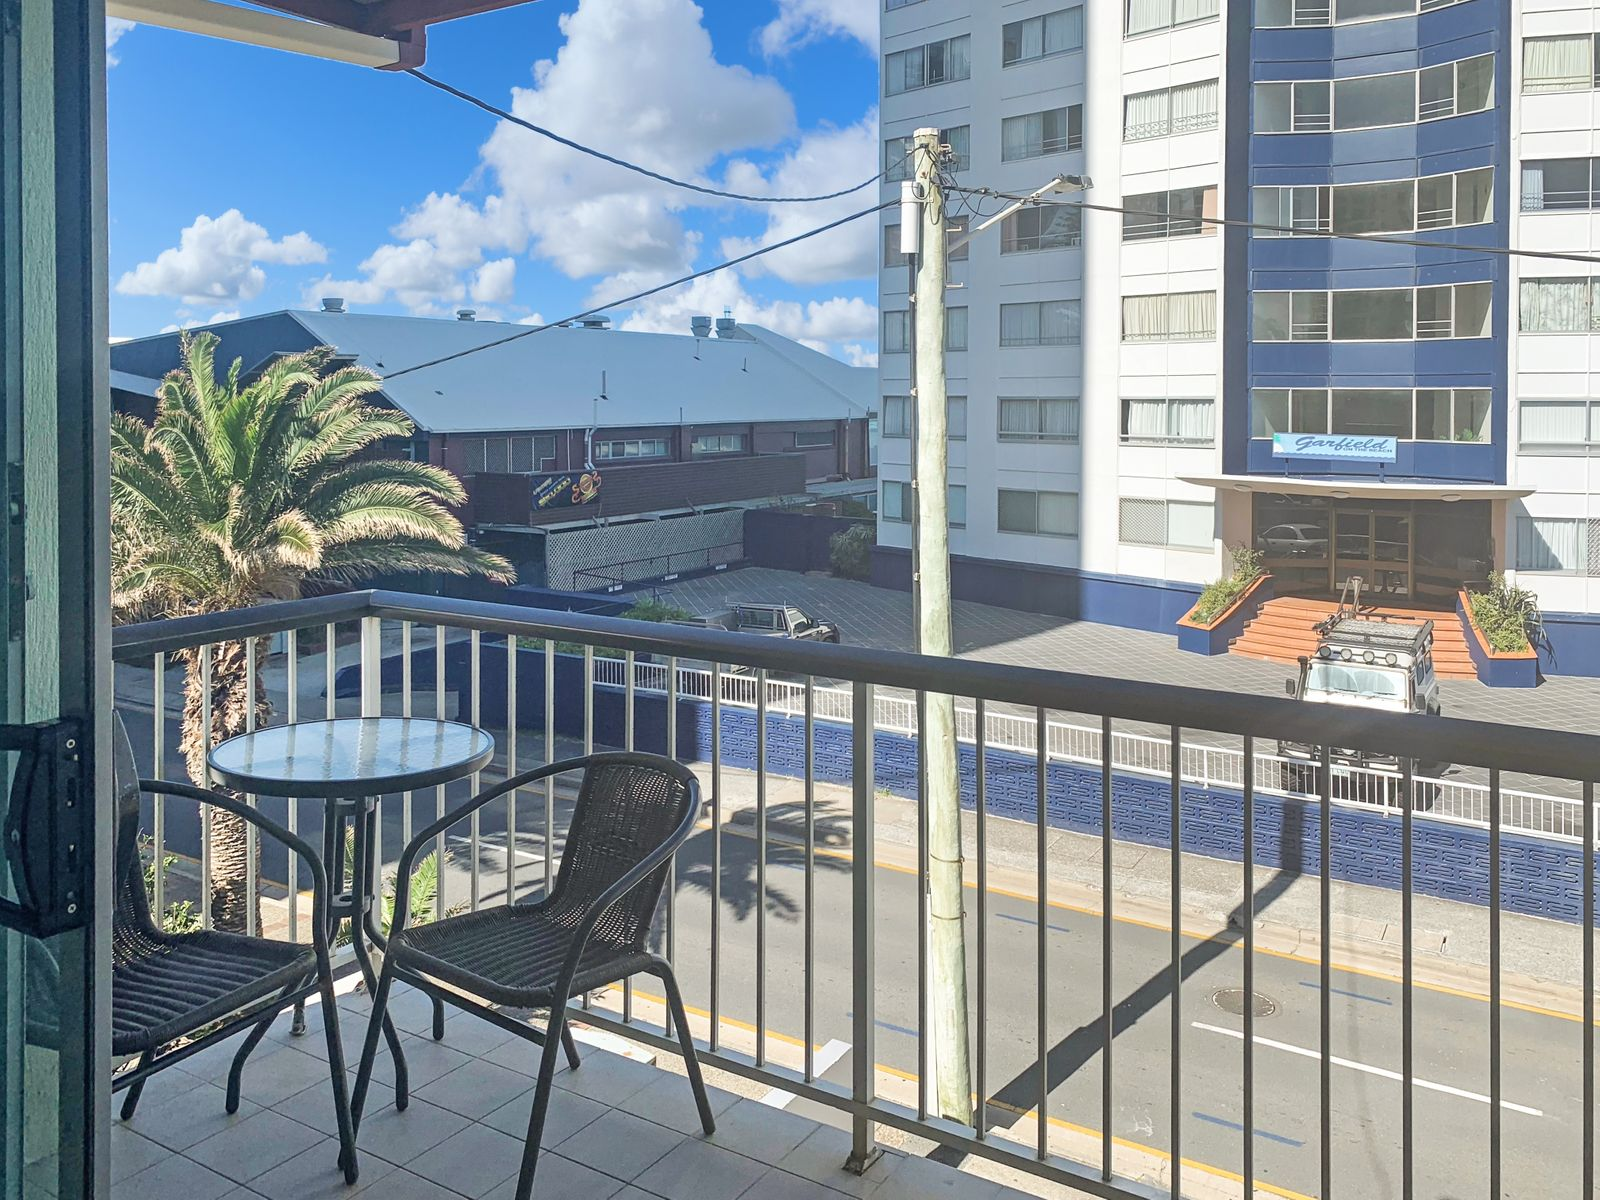 4/46 Garfield Terrace, Surfers Paradise, QLD 4217